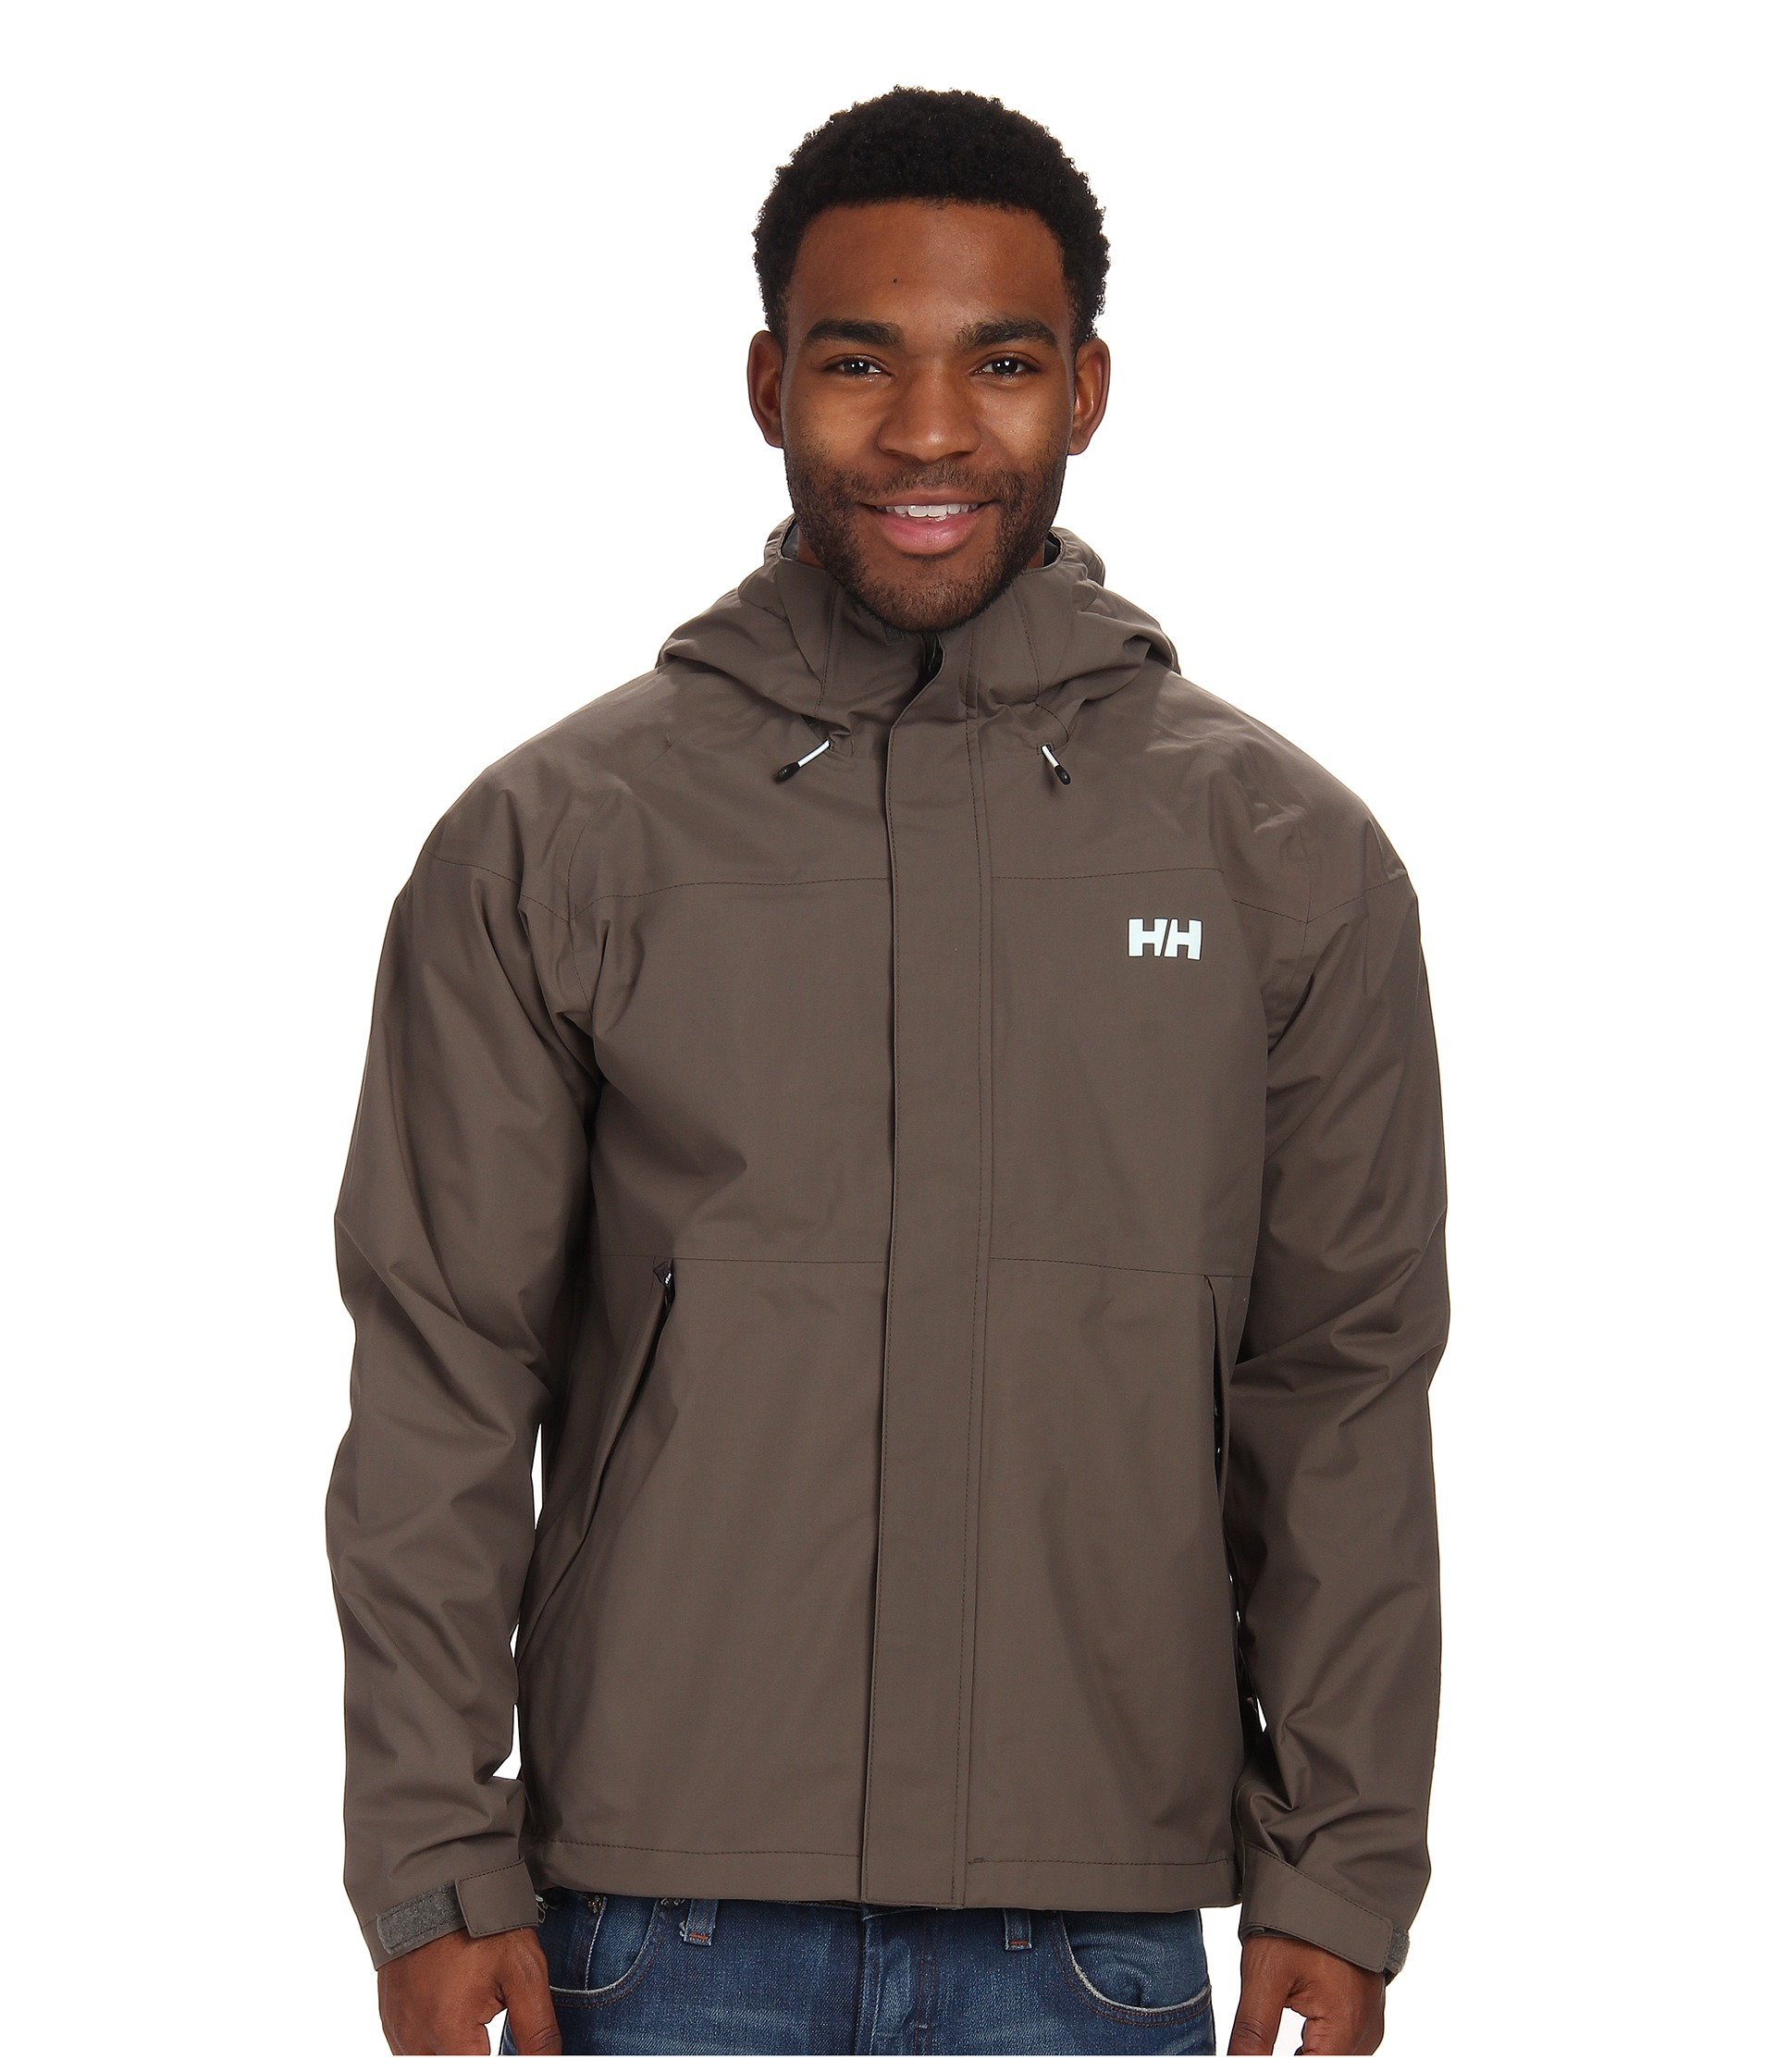 Shop the best selection of men's down jackets at bestsupsm5.cf, where you'll find premium outdoor gear and clothing and experts to guide you through selection.